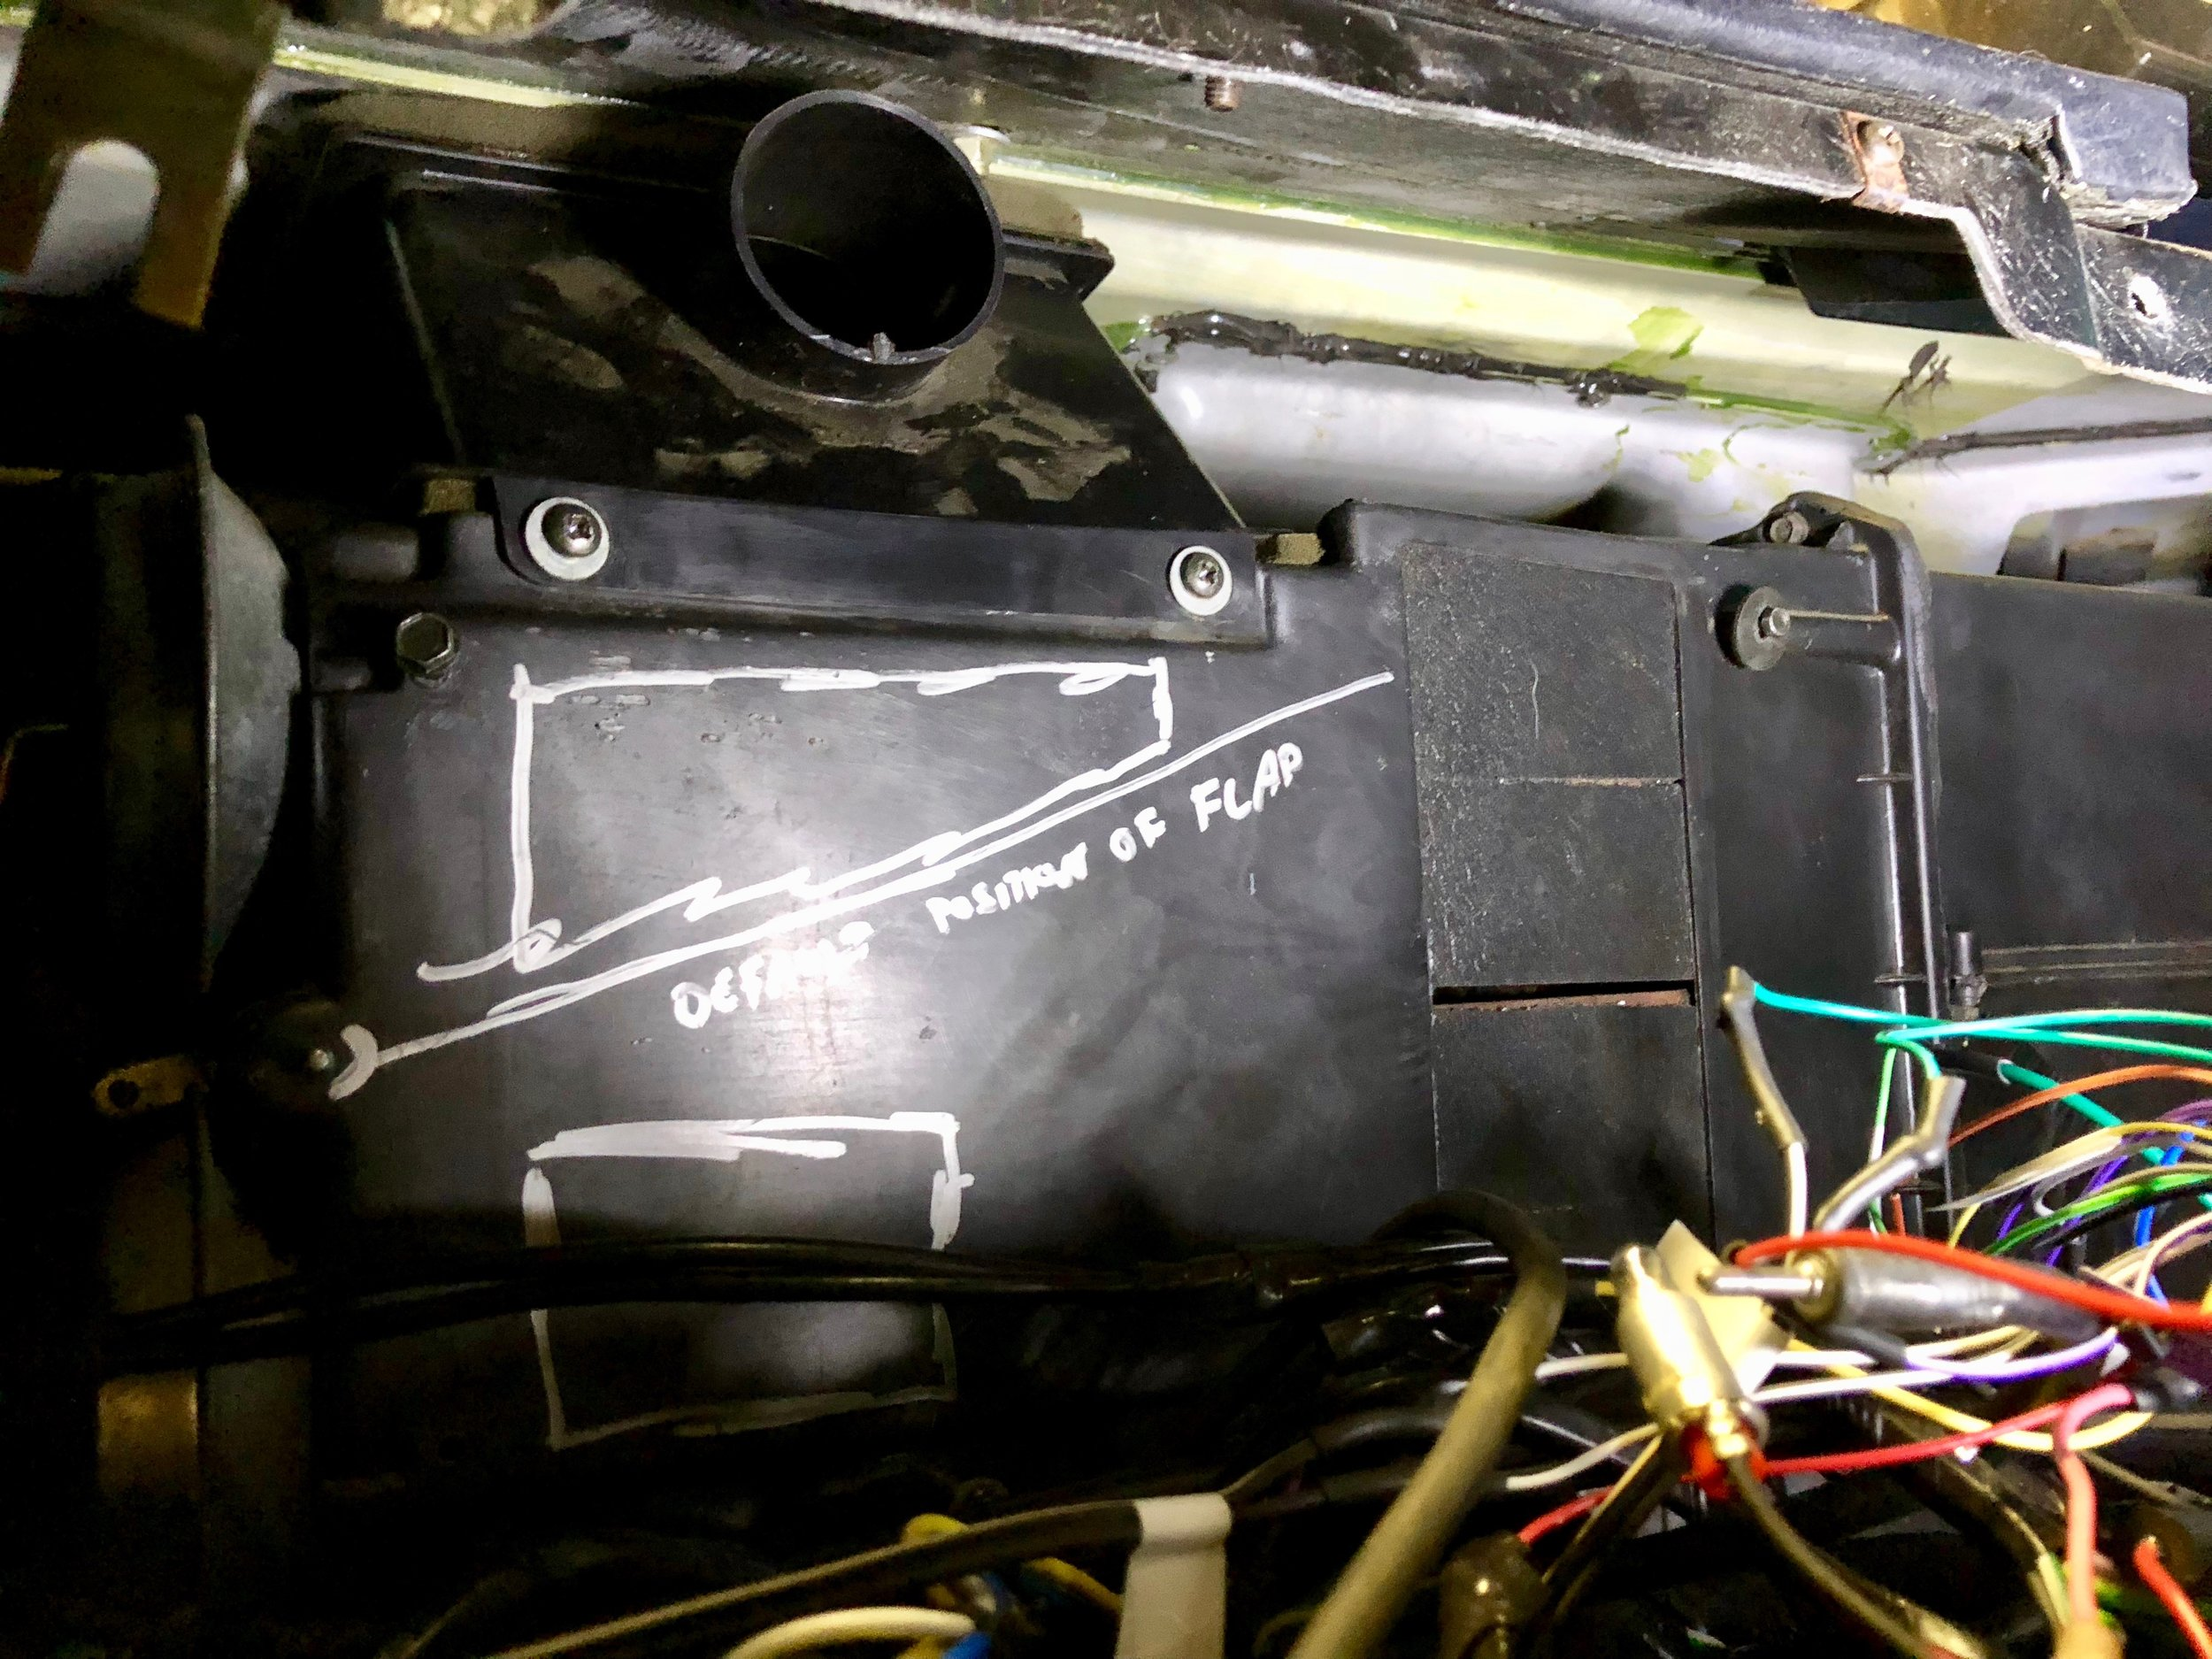 The position of the defrost vent under the dash. The two screws on the face come out, and then it can be tilted out from under the dash. The air distributor is removed in this picture, as is the duct that goes from the distributor to the vent. The drawings on the box are for a later experiment, and indicate safe areas to cut the box and the default location of the defrost flap.